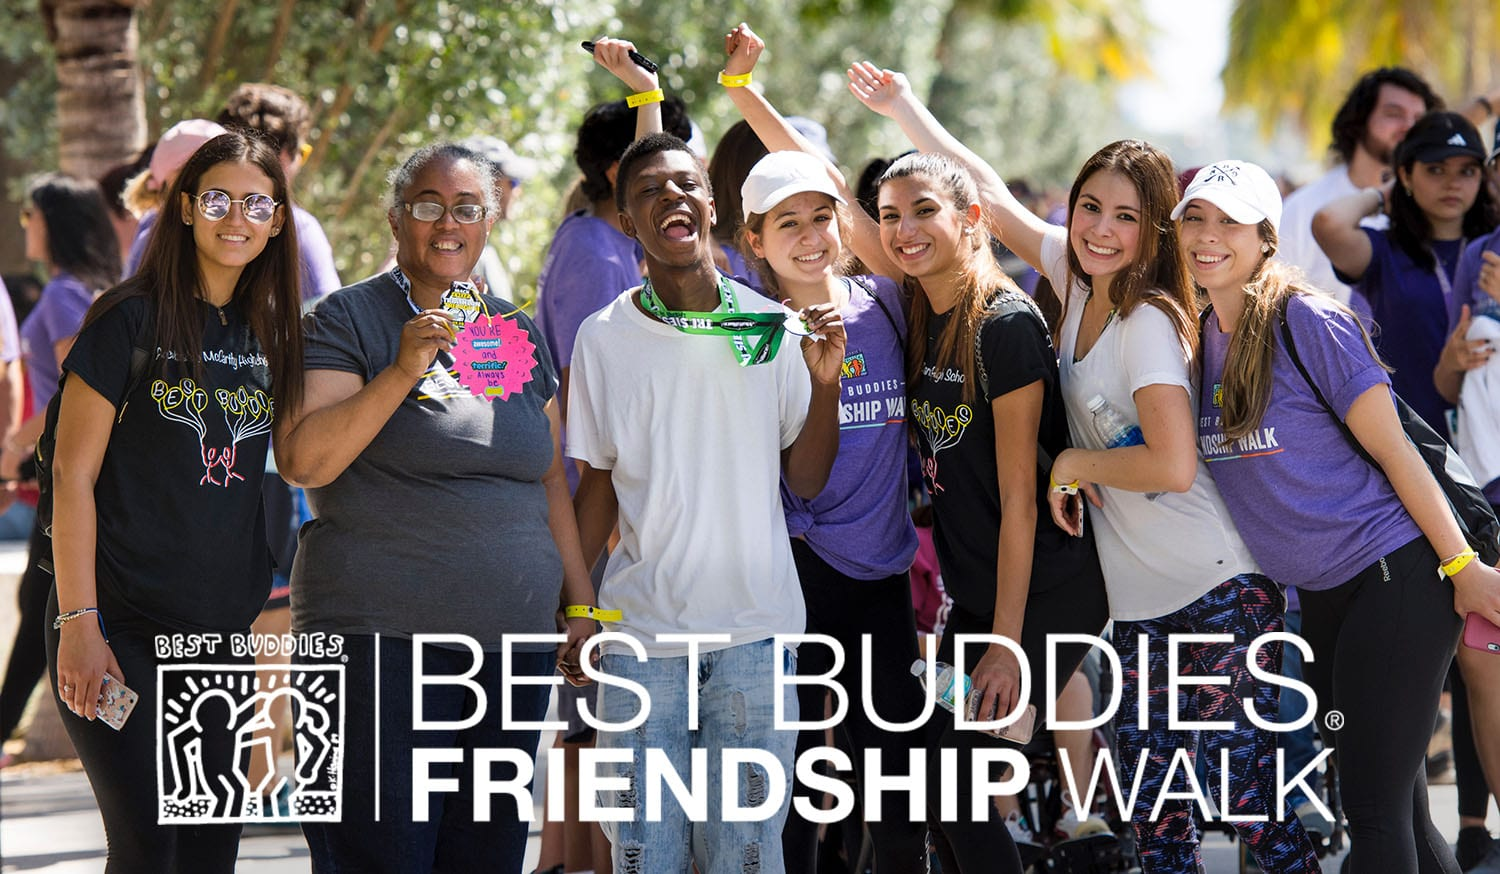 Best Buddies Friendship Walk and Family Festival at Museum Park in Miami on March 11rd, 2017. (Photo by MagicalPhotos / Mitchell Zachs)